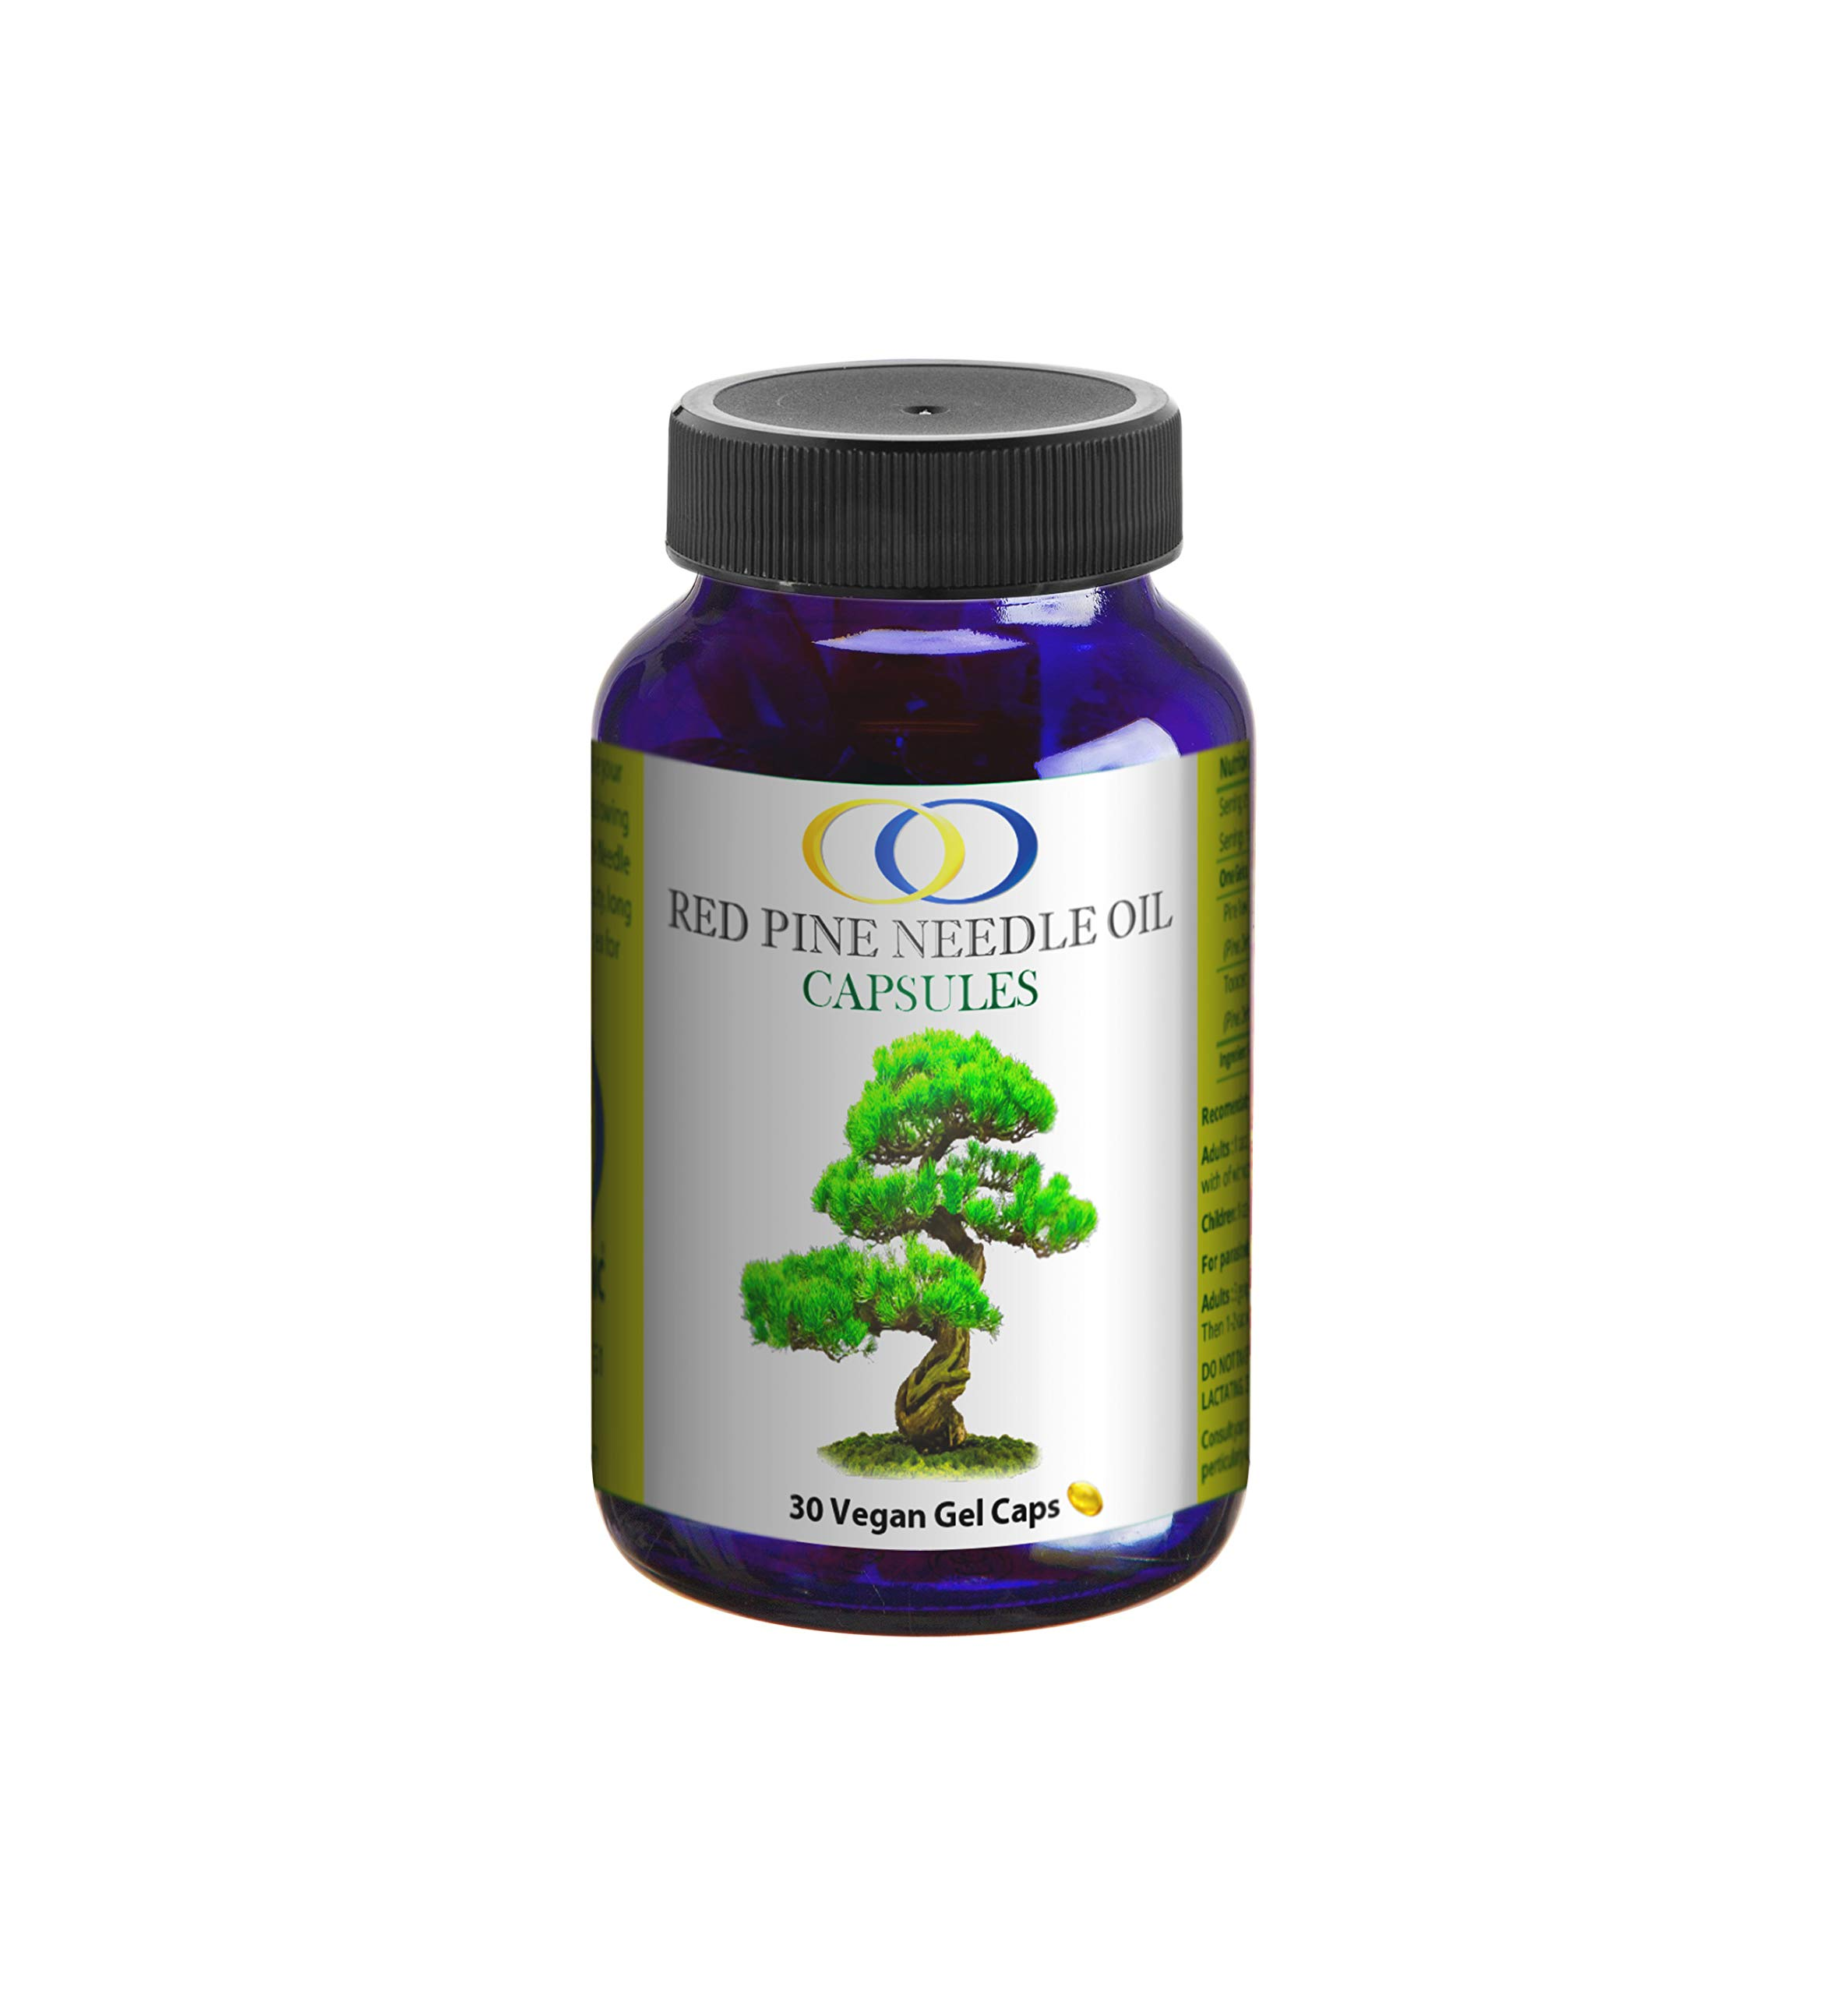 Optimally Organic Korean Red Pine Needle Oil Capsules - Powerful Immune System Booster - Anti Aging Properties - Wild Crafted, Non GMO - Pure, Bioactive, Vegan Beauty Treatment - 30 Capsules